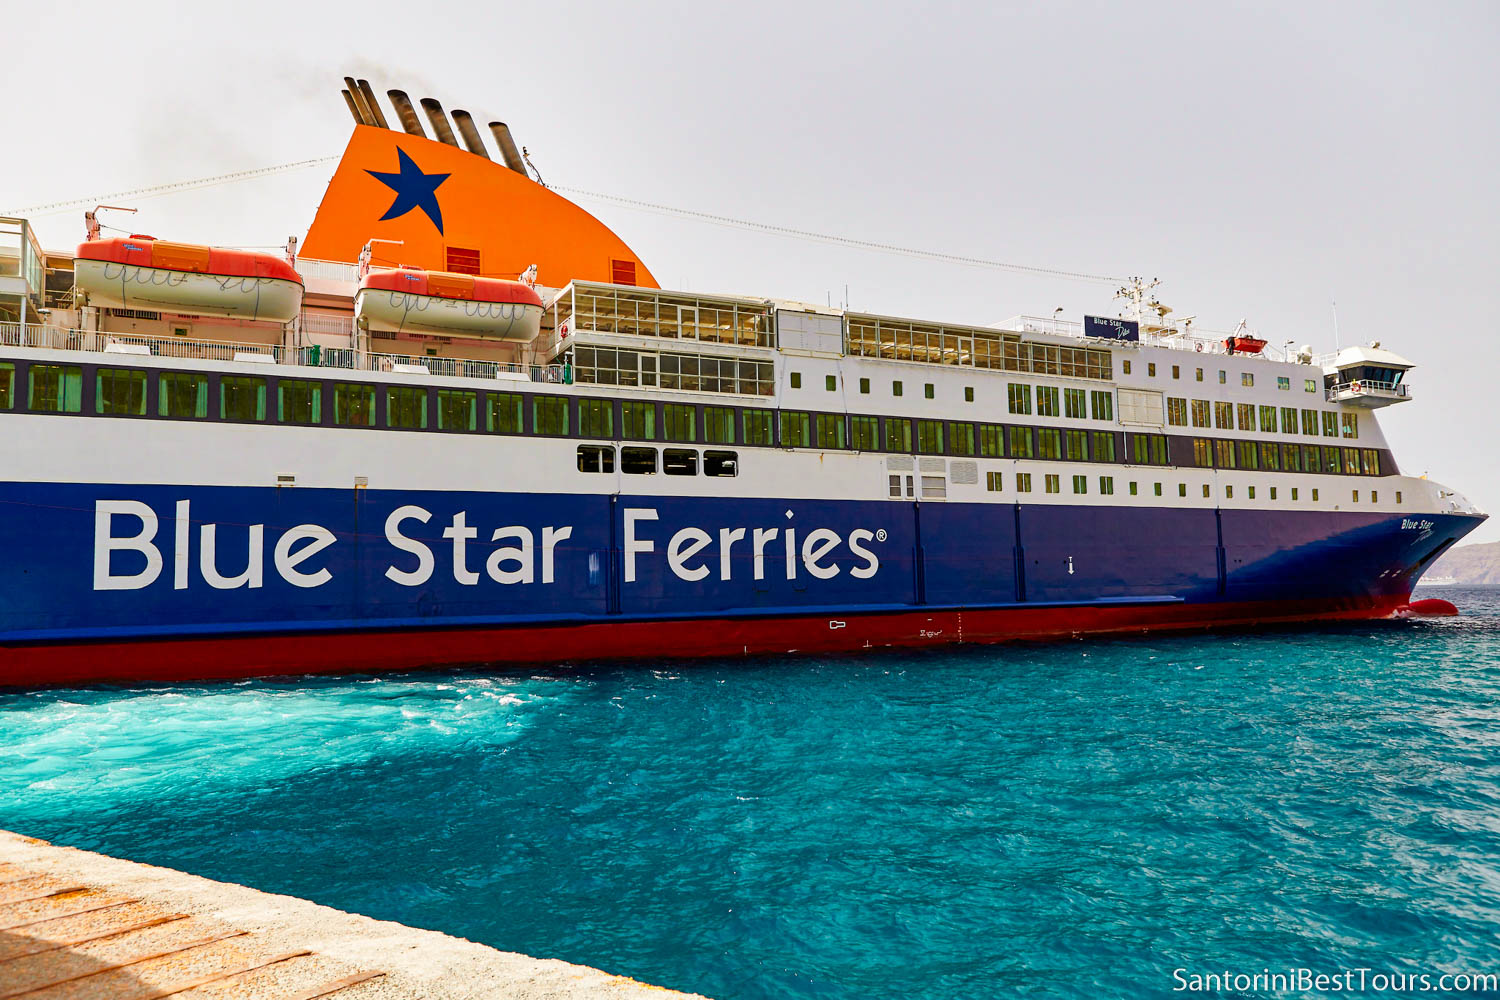 Ferry from Athens to Santorini - Blue Star Ferries